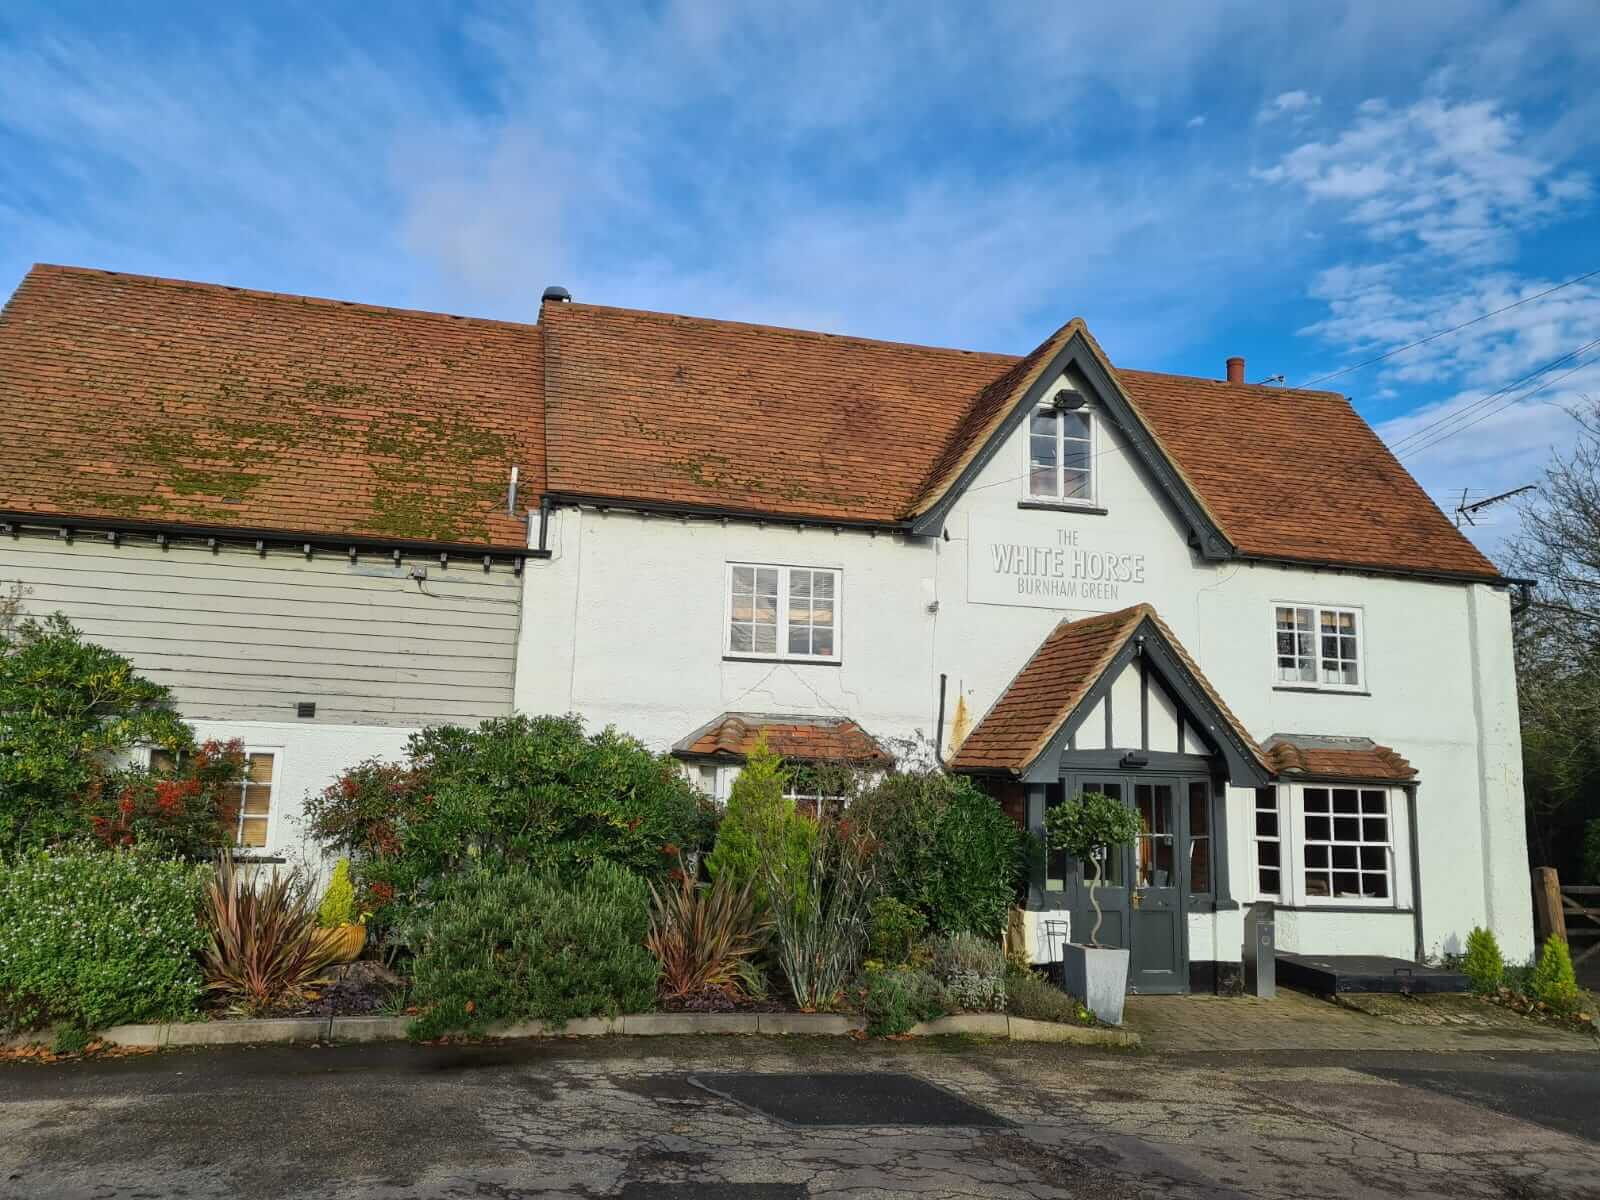 Pub in Hertfordshire: The White Horse Pub at Burnham Green